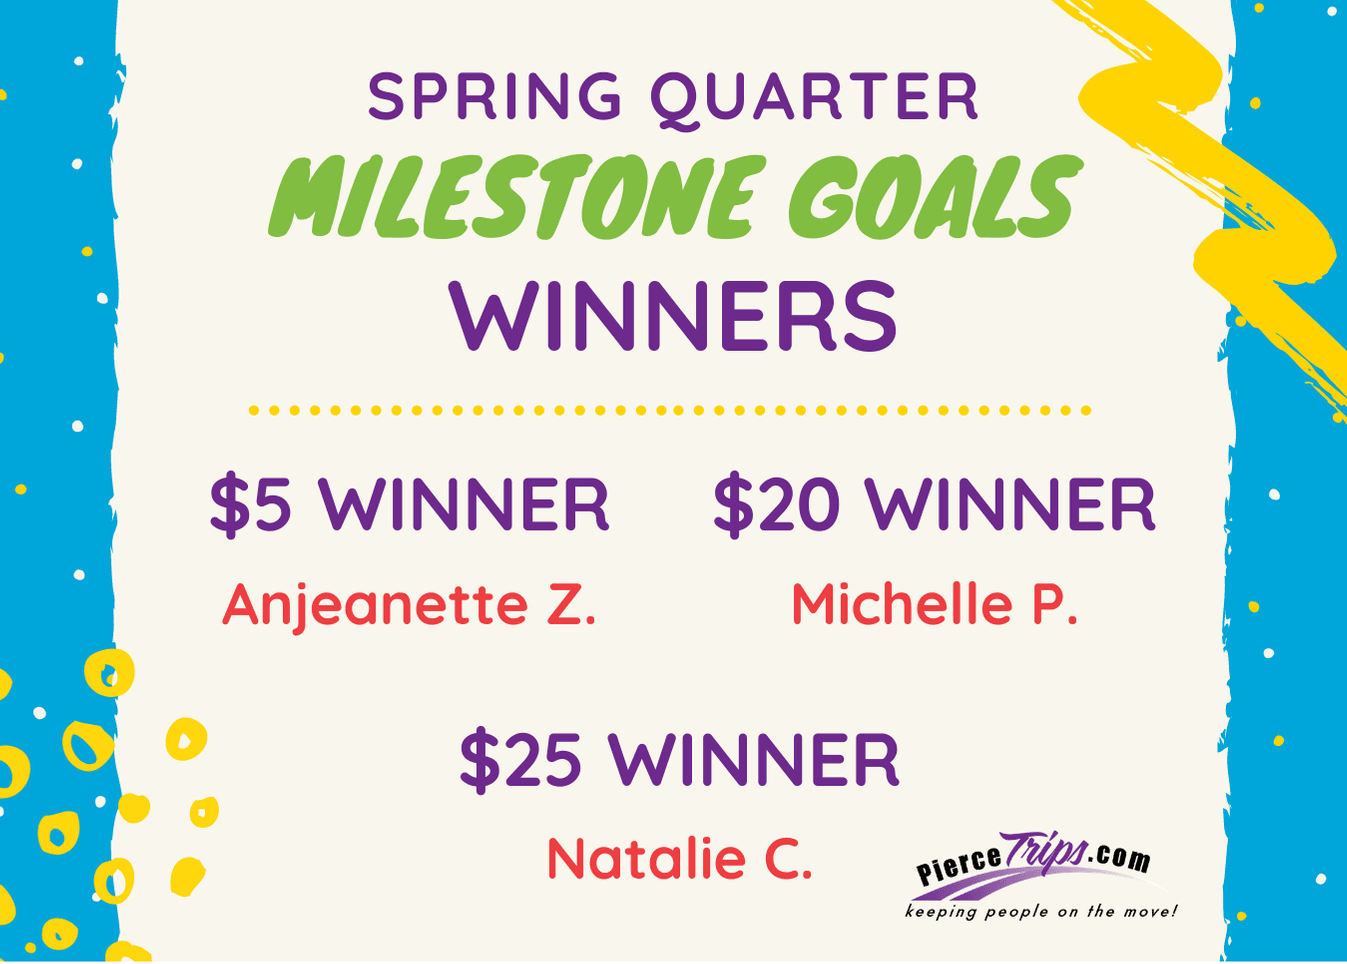 Milestone Goals -2 Quarter Winners